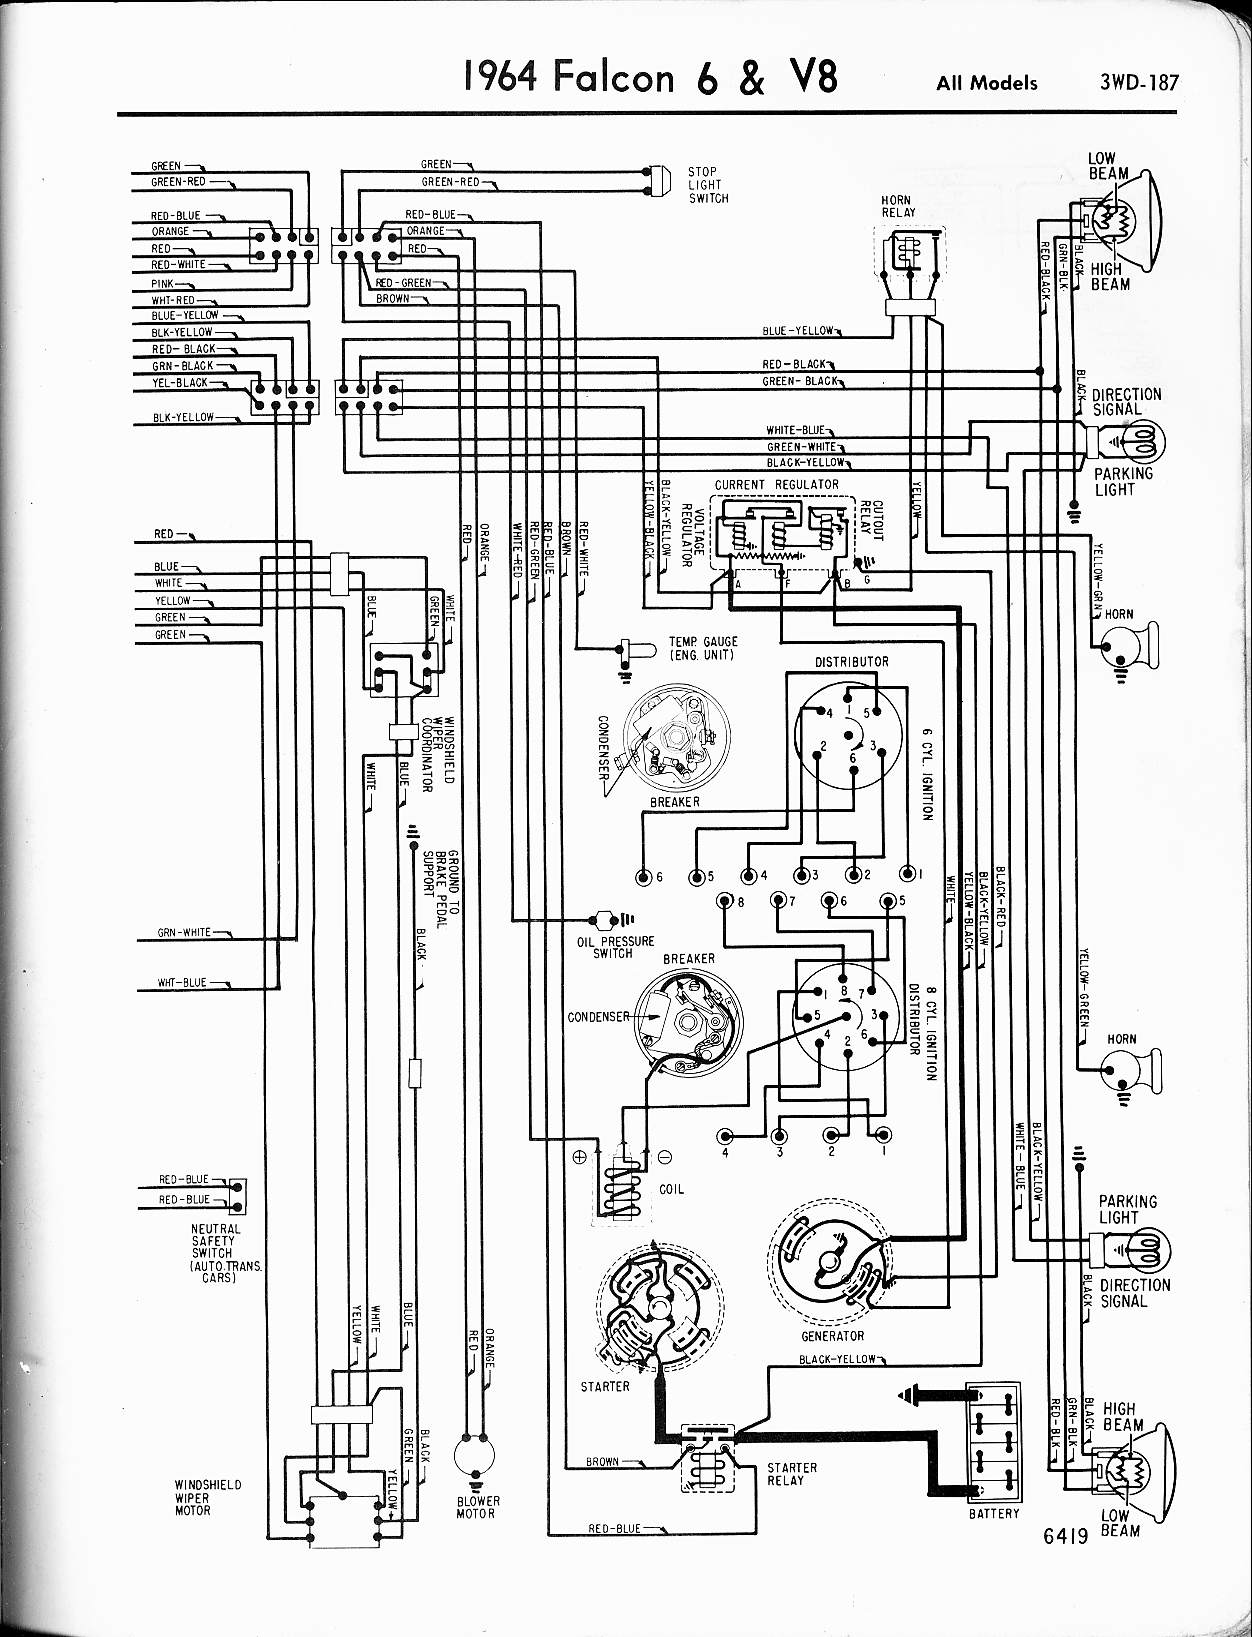 1964 falcon wiring help needed ford muscle forums 1964 falcon ignition wiring  diagram 1964 falcon sprint wiring diagram